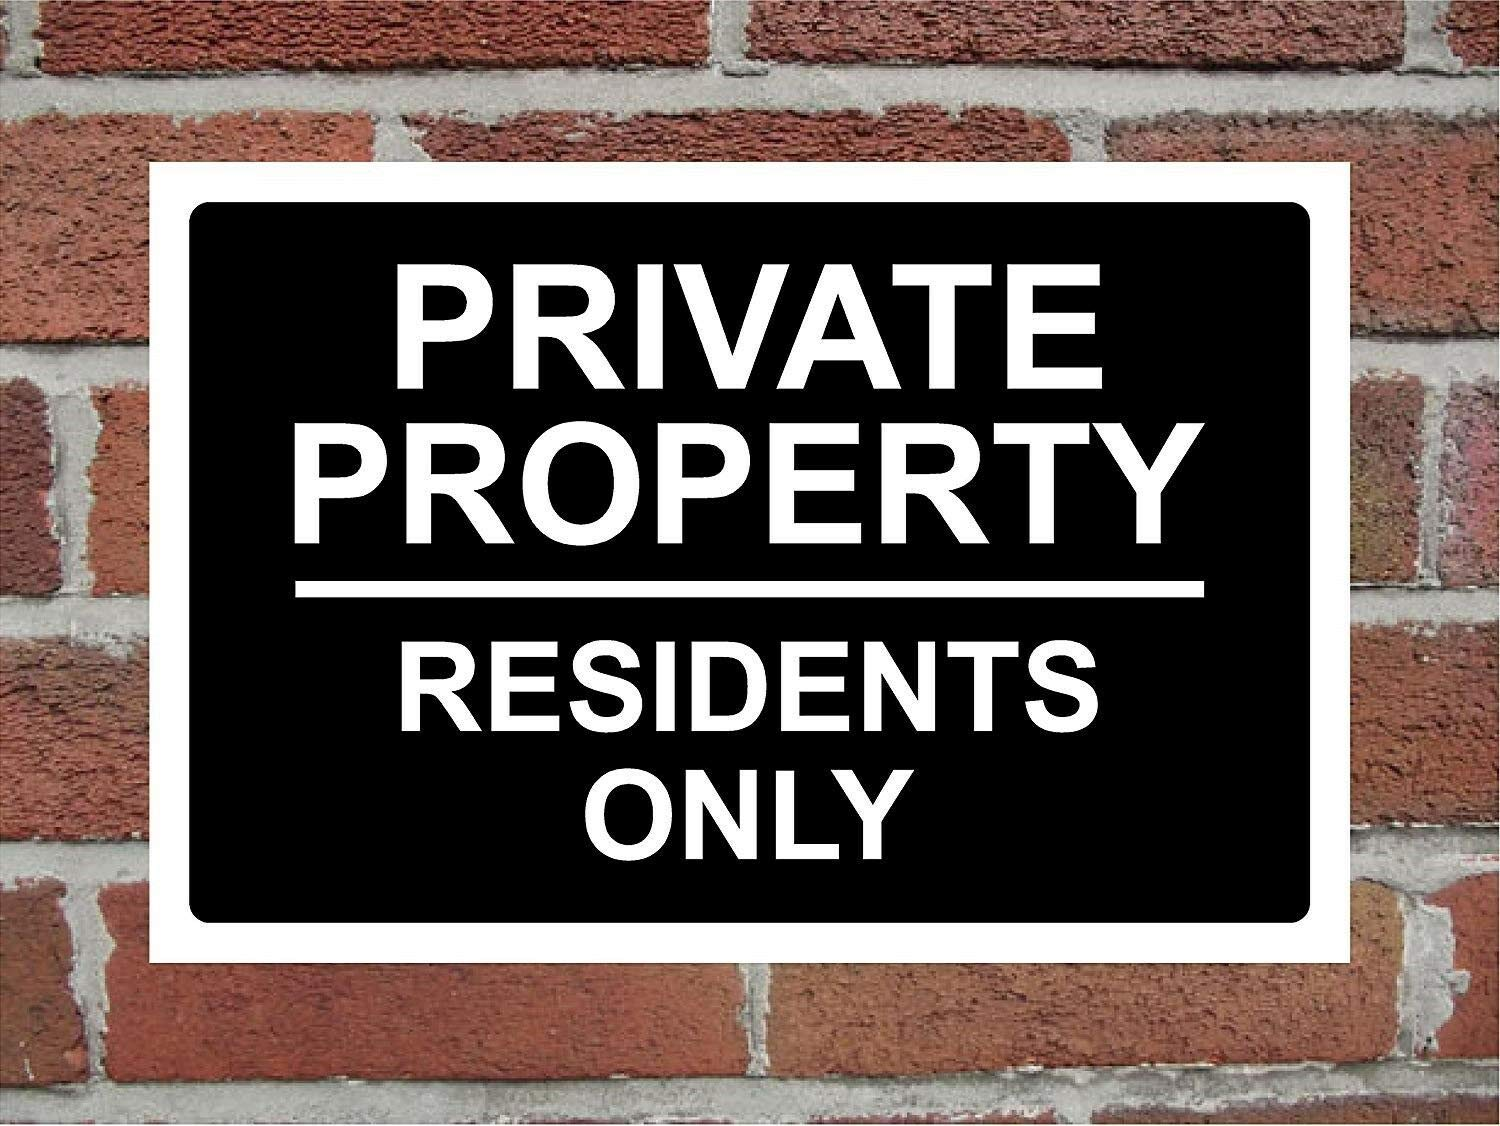 Private Land No Public Access Or Right Of Way Correx Warning Sign 300 x 200mm.